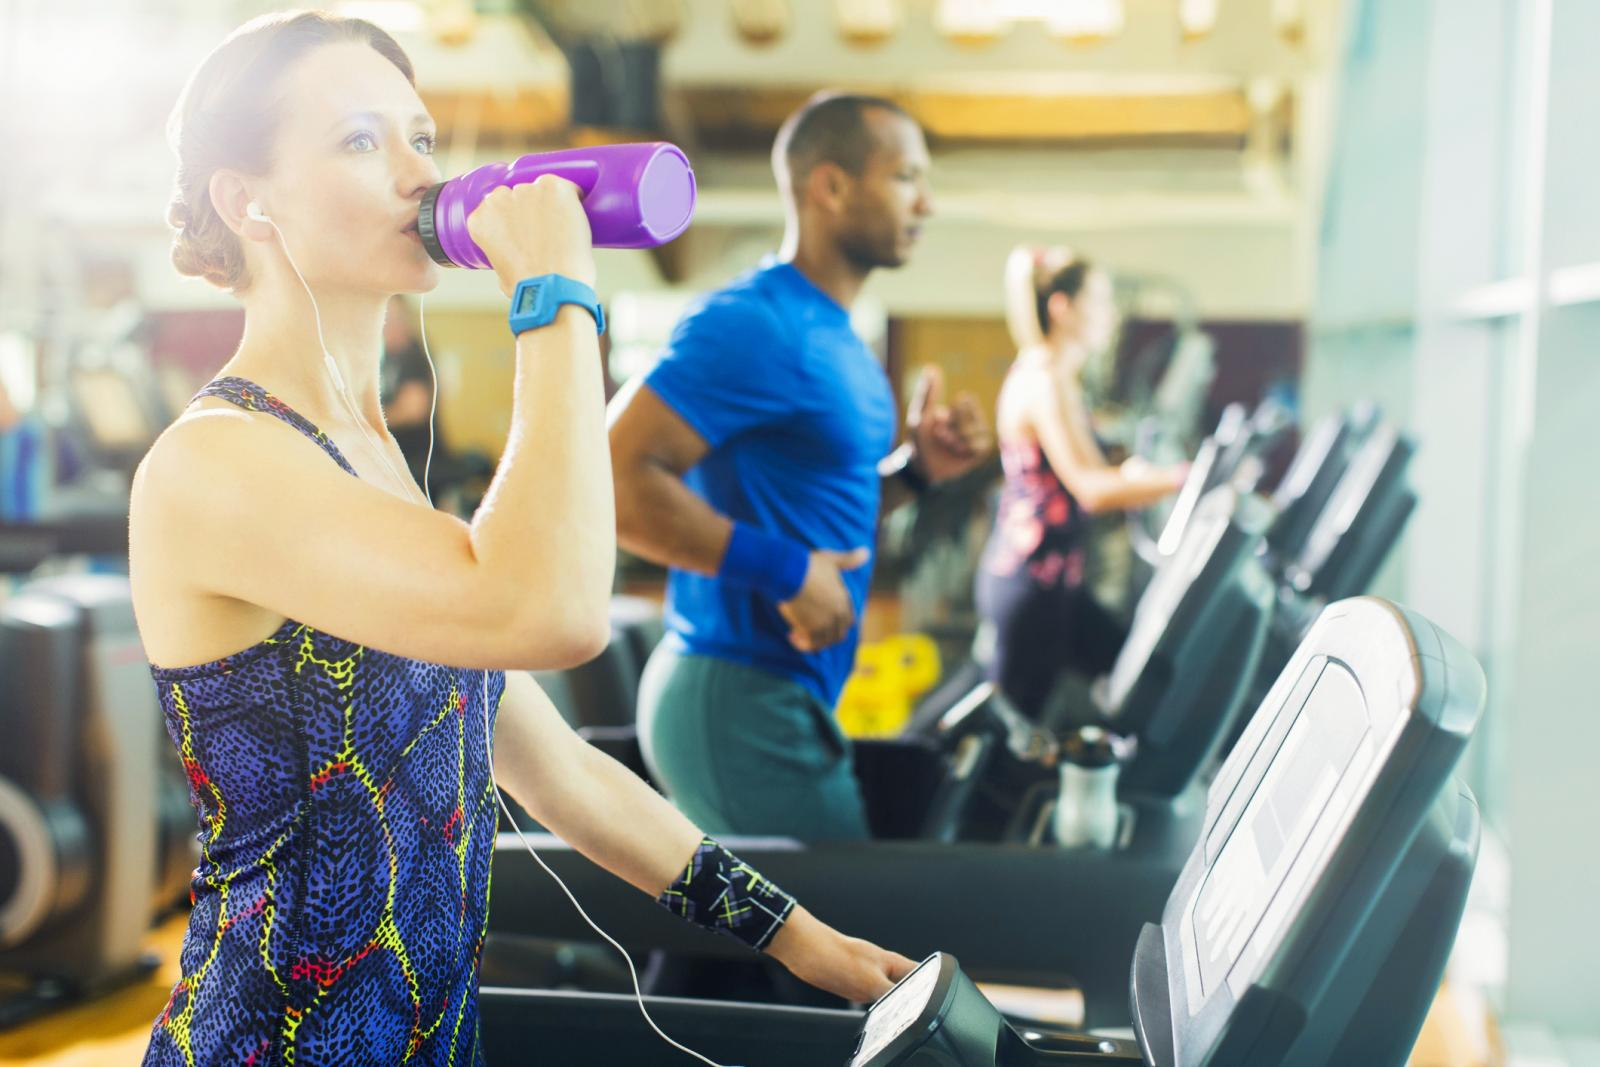 Woman on treadmill drinking water